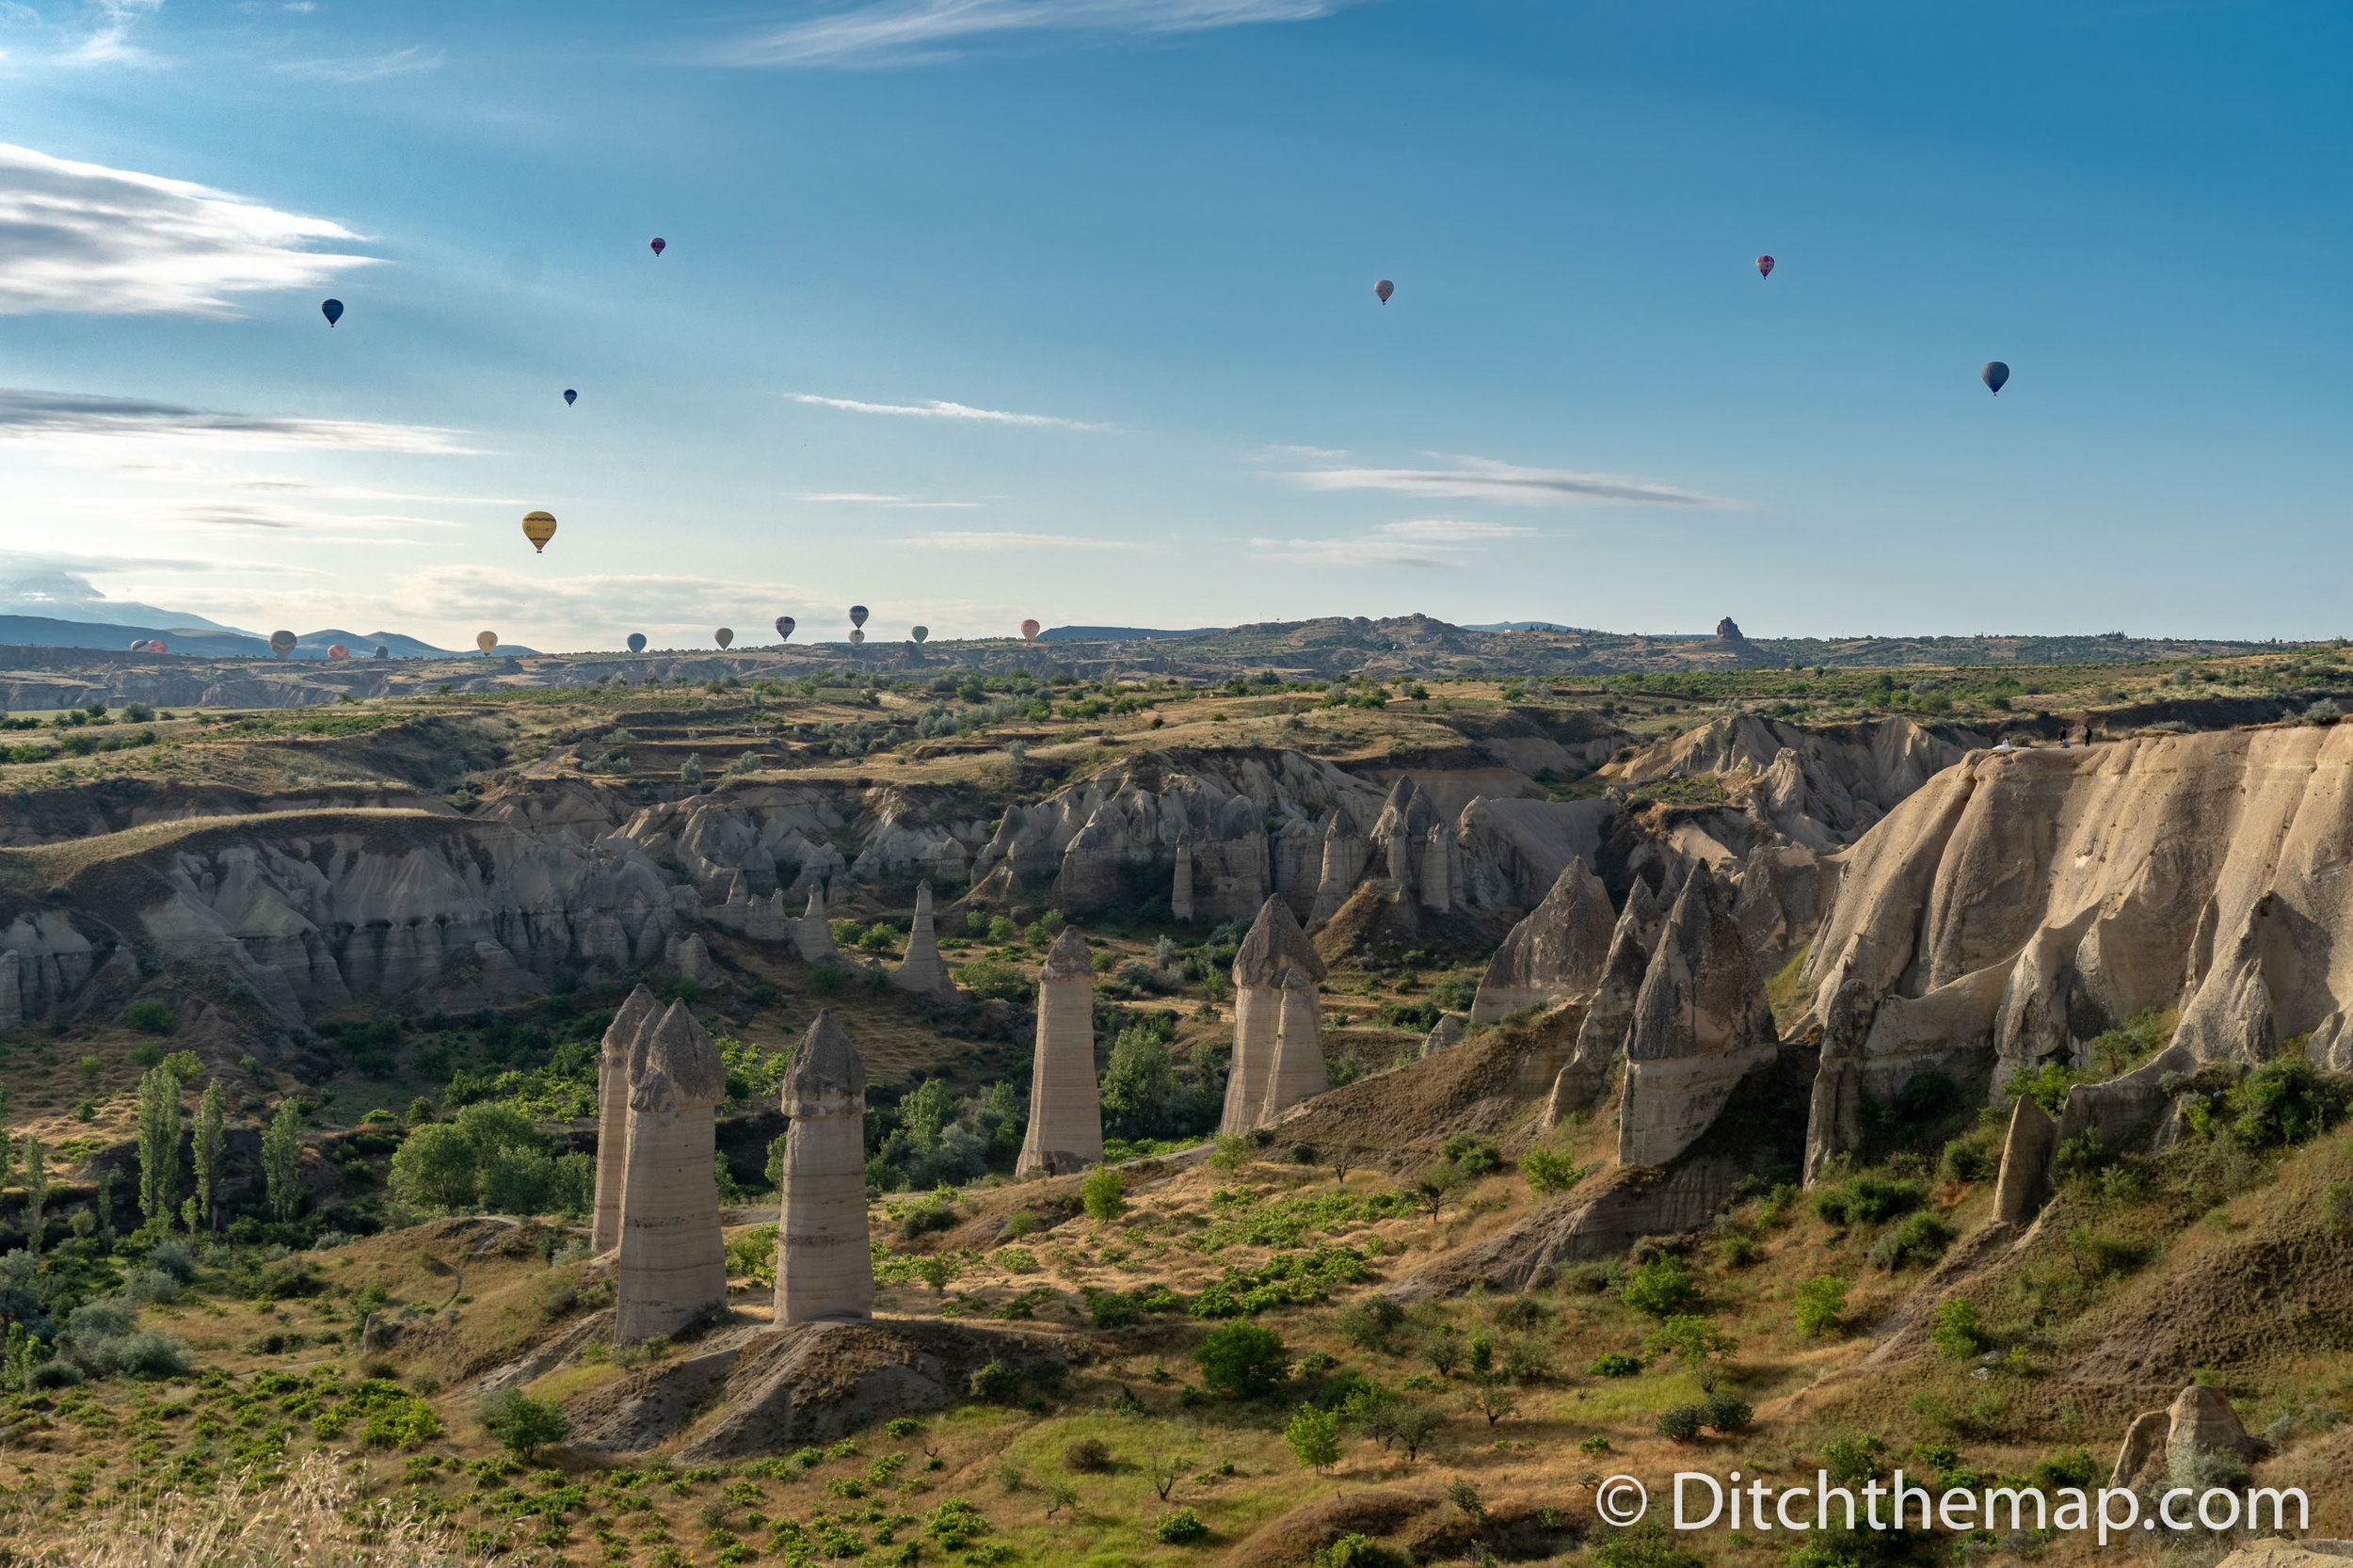 Monuments and balloons in sky